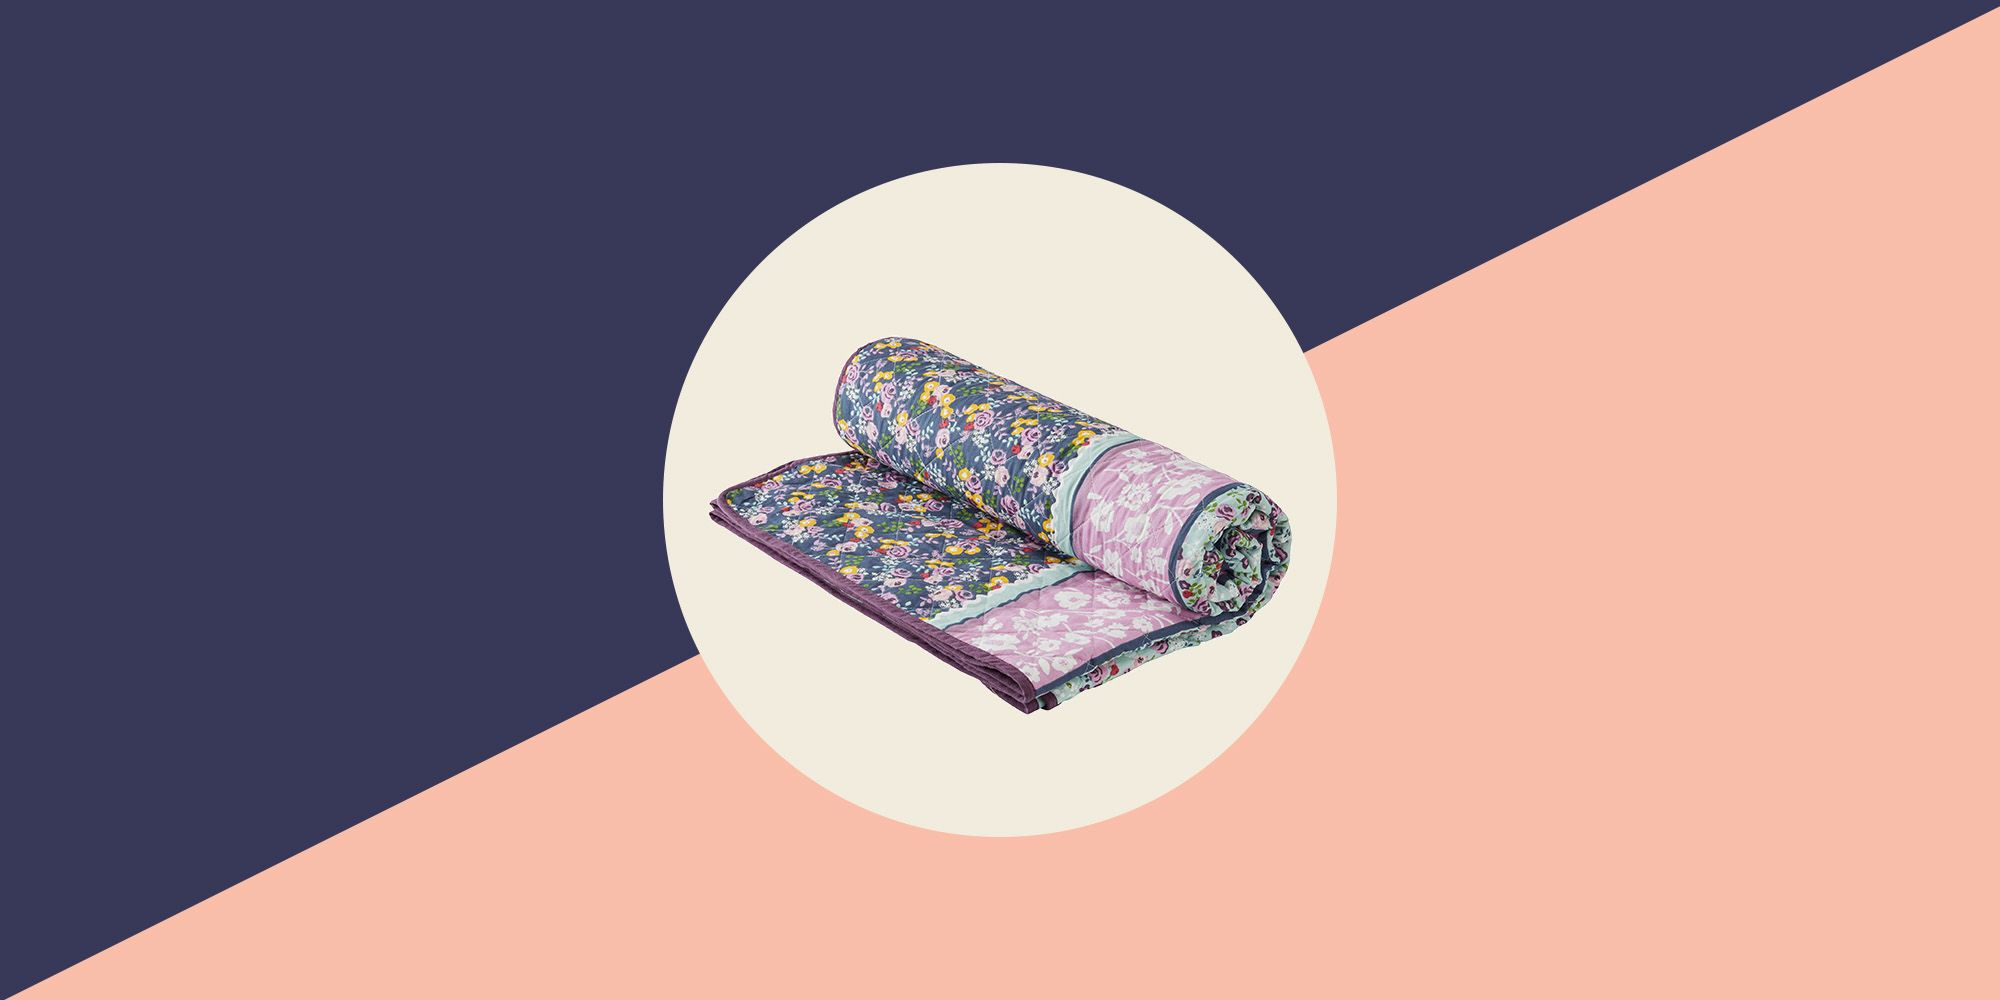 Morrisons' floral bedspread is £248 cheaper than this designer version